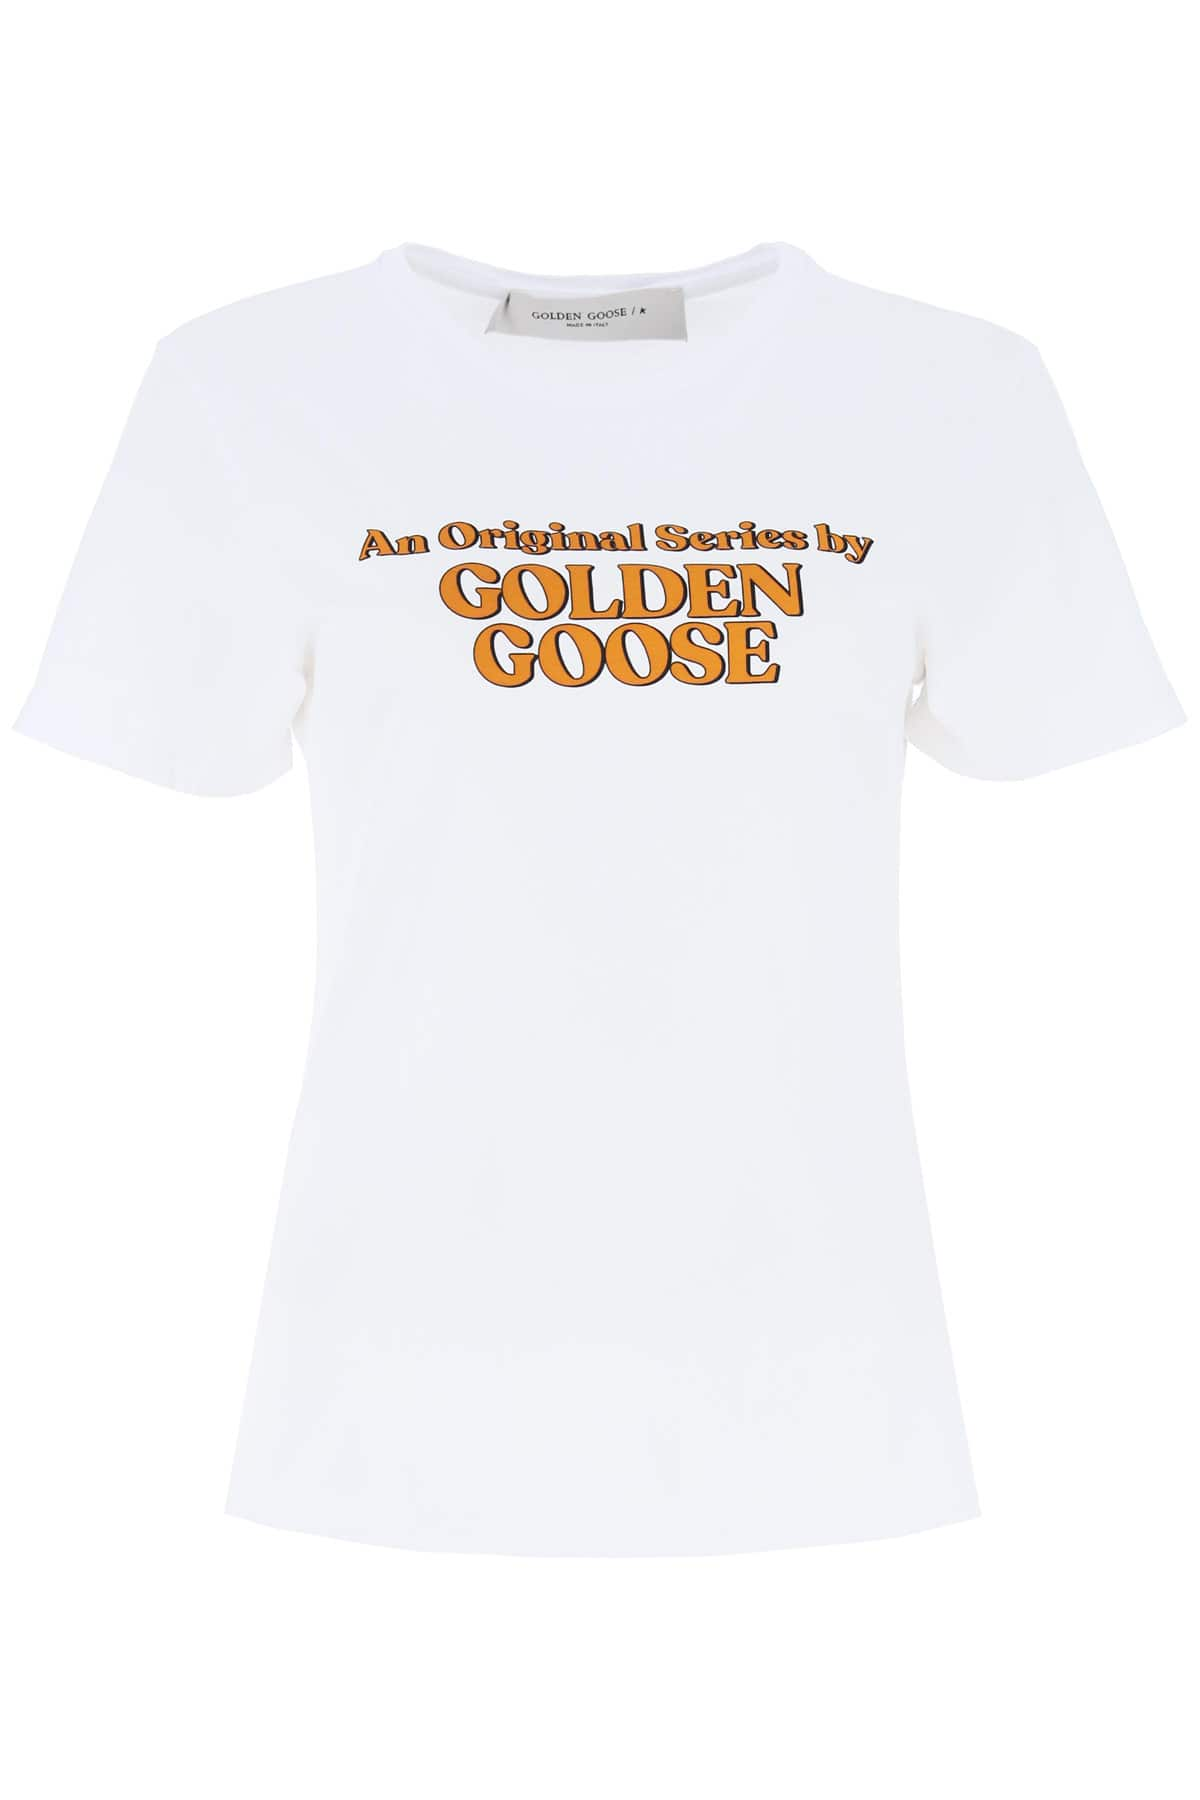 GOLDEN GOOSE GOLDEN SERIES ANIA T-SHIRT M White Cotton